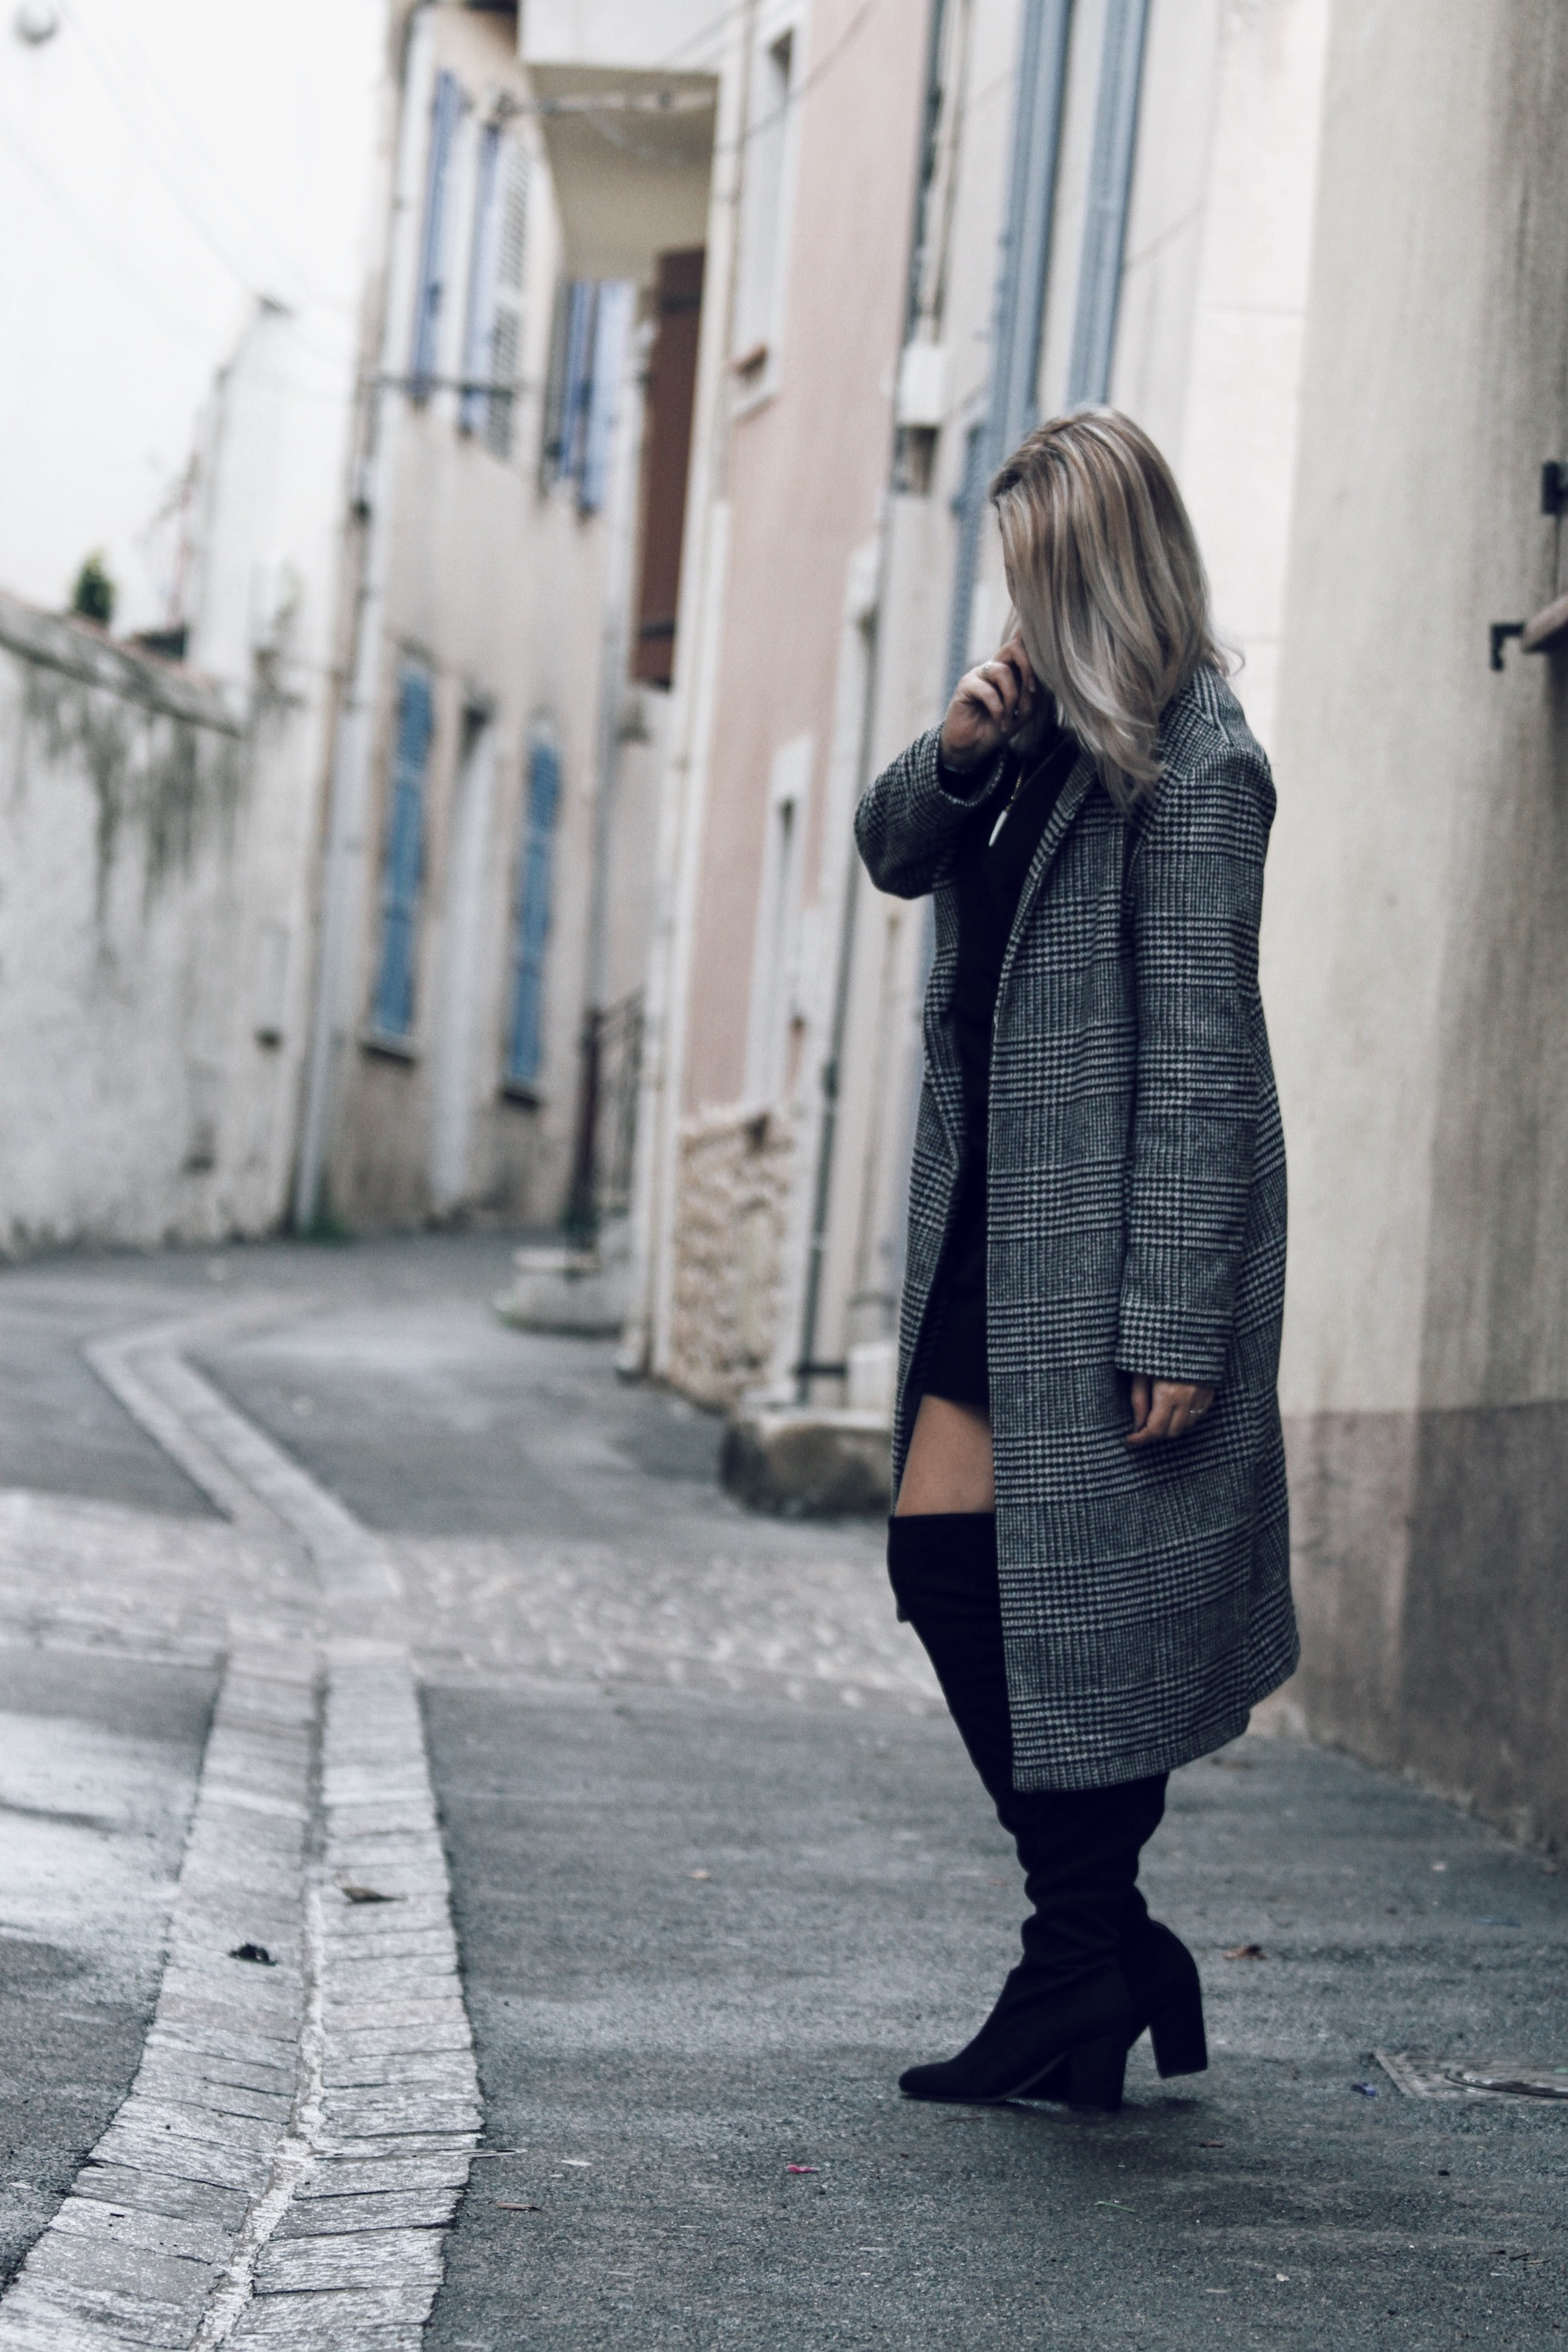 new-look-cuissarde-manteau-style-ootd-fashion-blogger